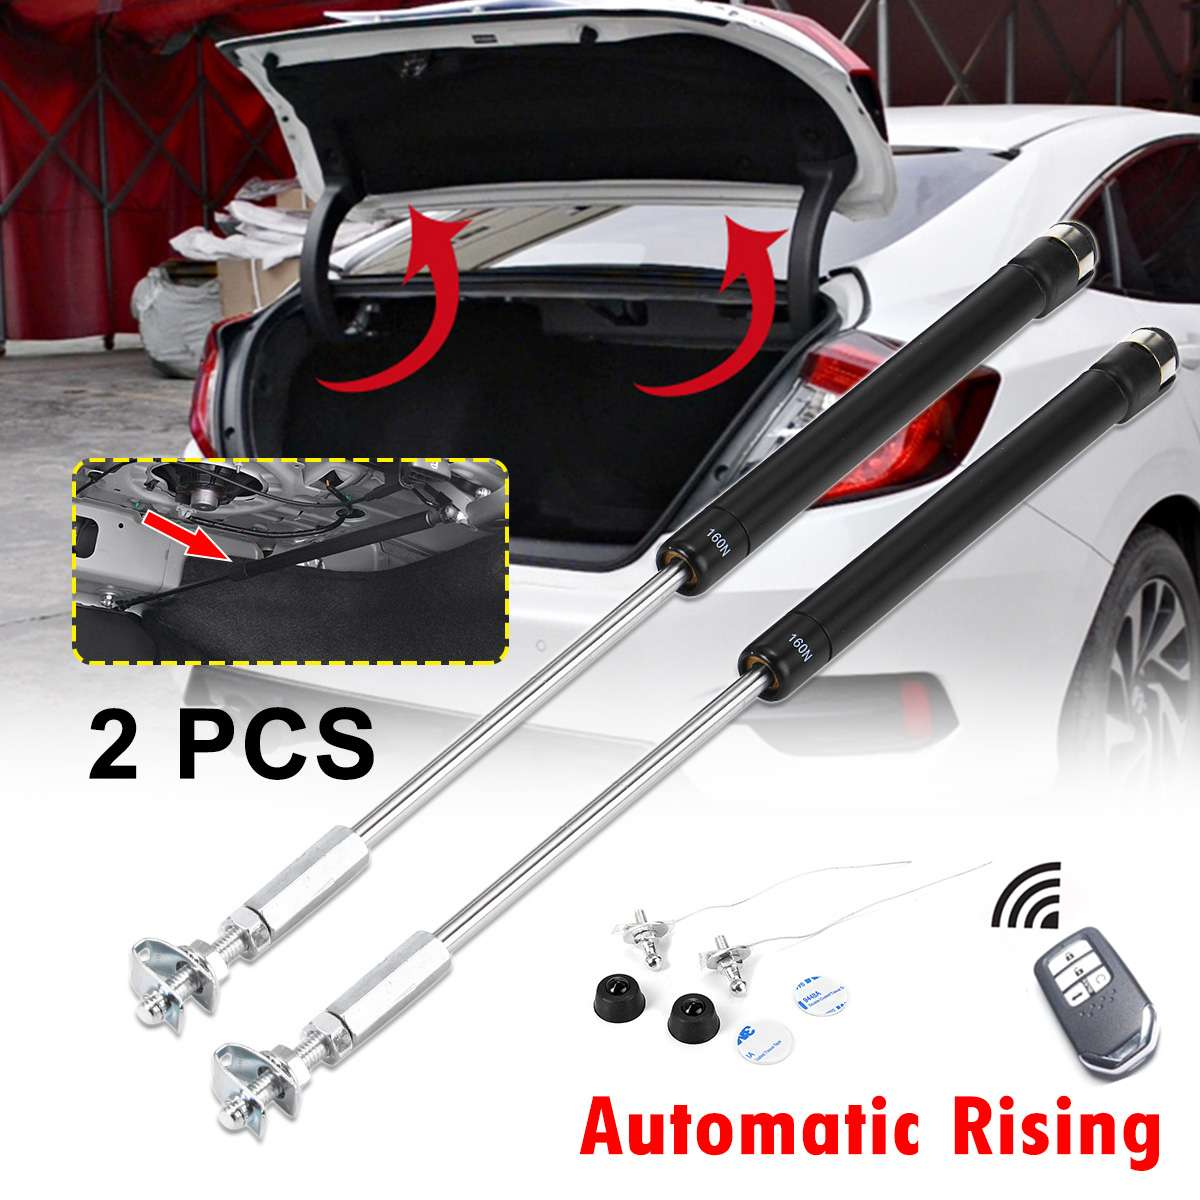 1Pair 160N Automatic Rising Rear Trunk Door Lifting Support Spring Gas Shock Hydraulic Strut Bars For Honda For Civic 2016-2019